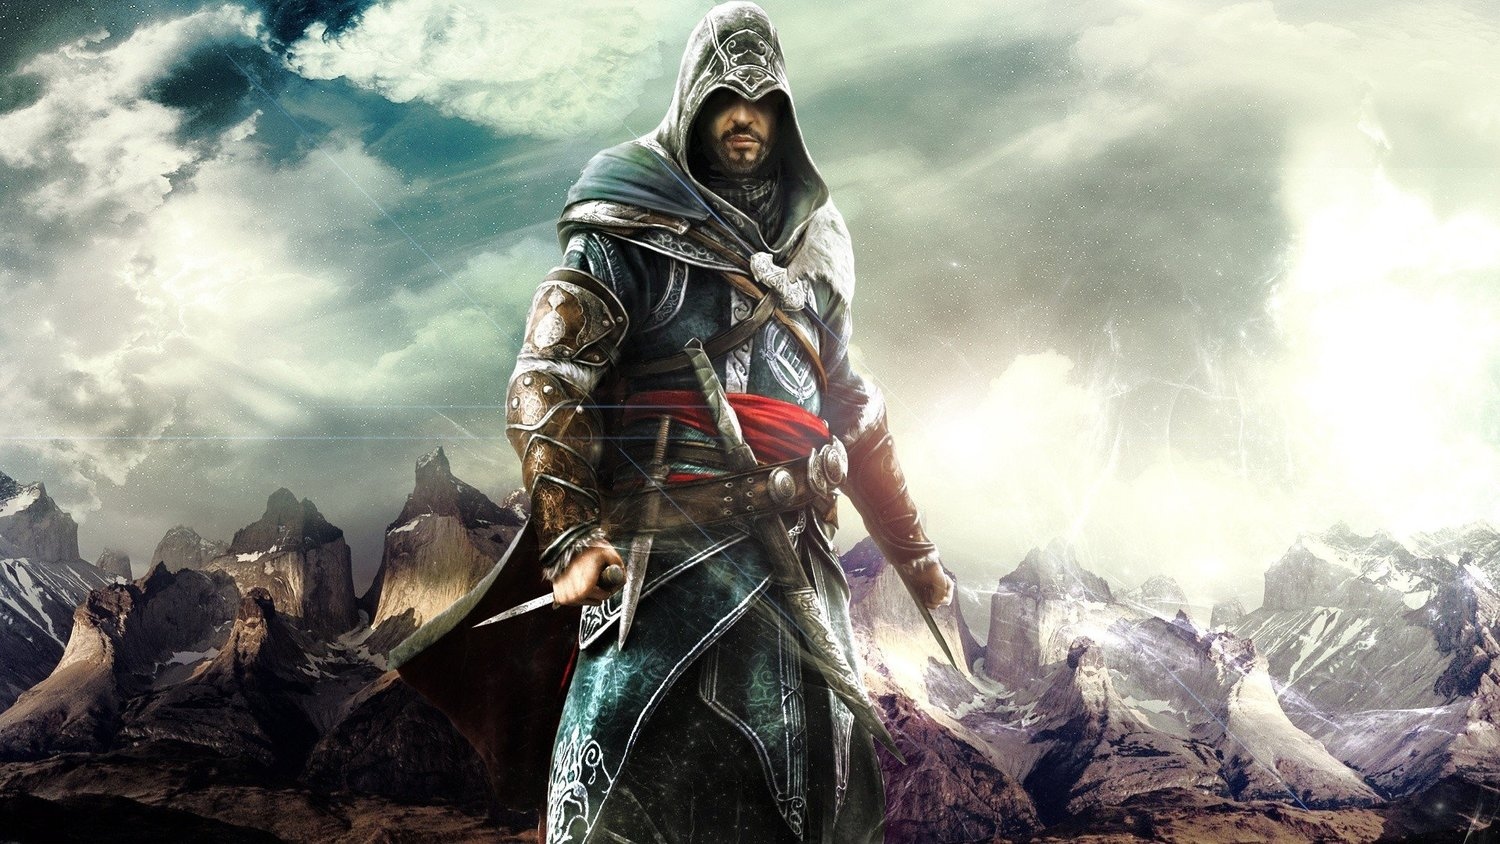 The Ezio Auditore Assassins Creed Games Are Coming To Current Gen